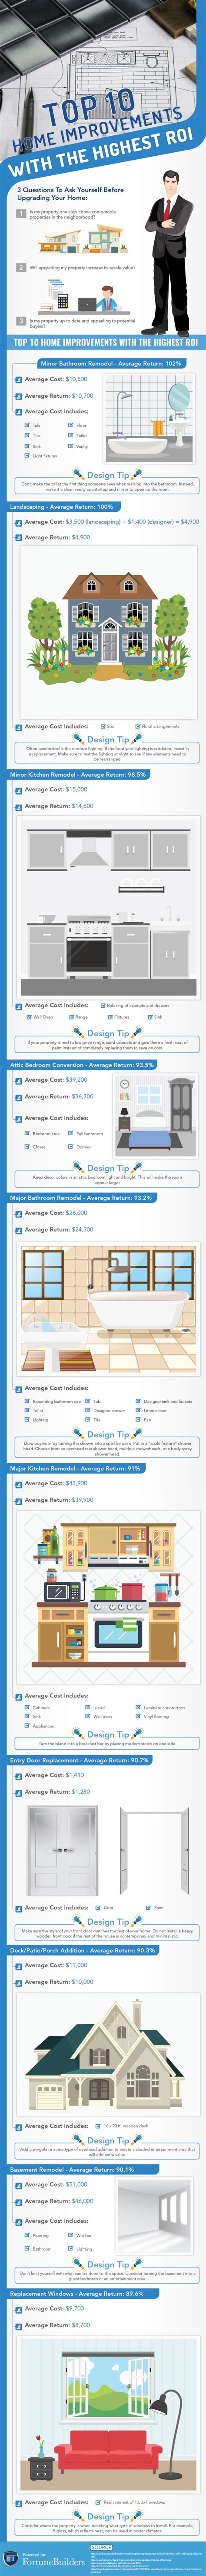 roi home improvements top 10 home improvements with the highest roi